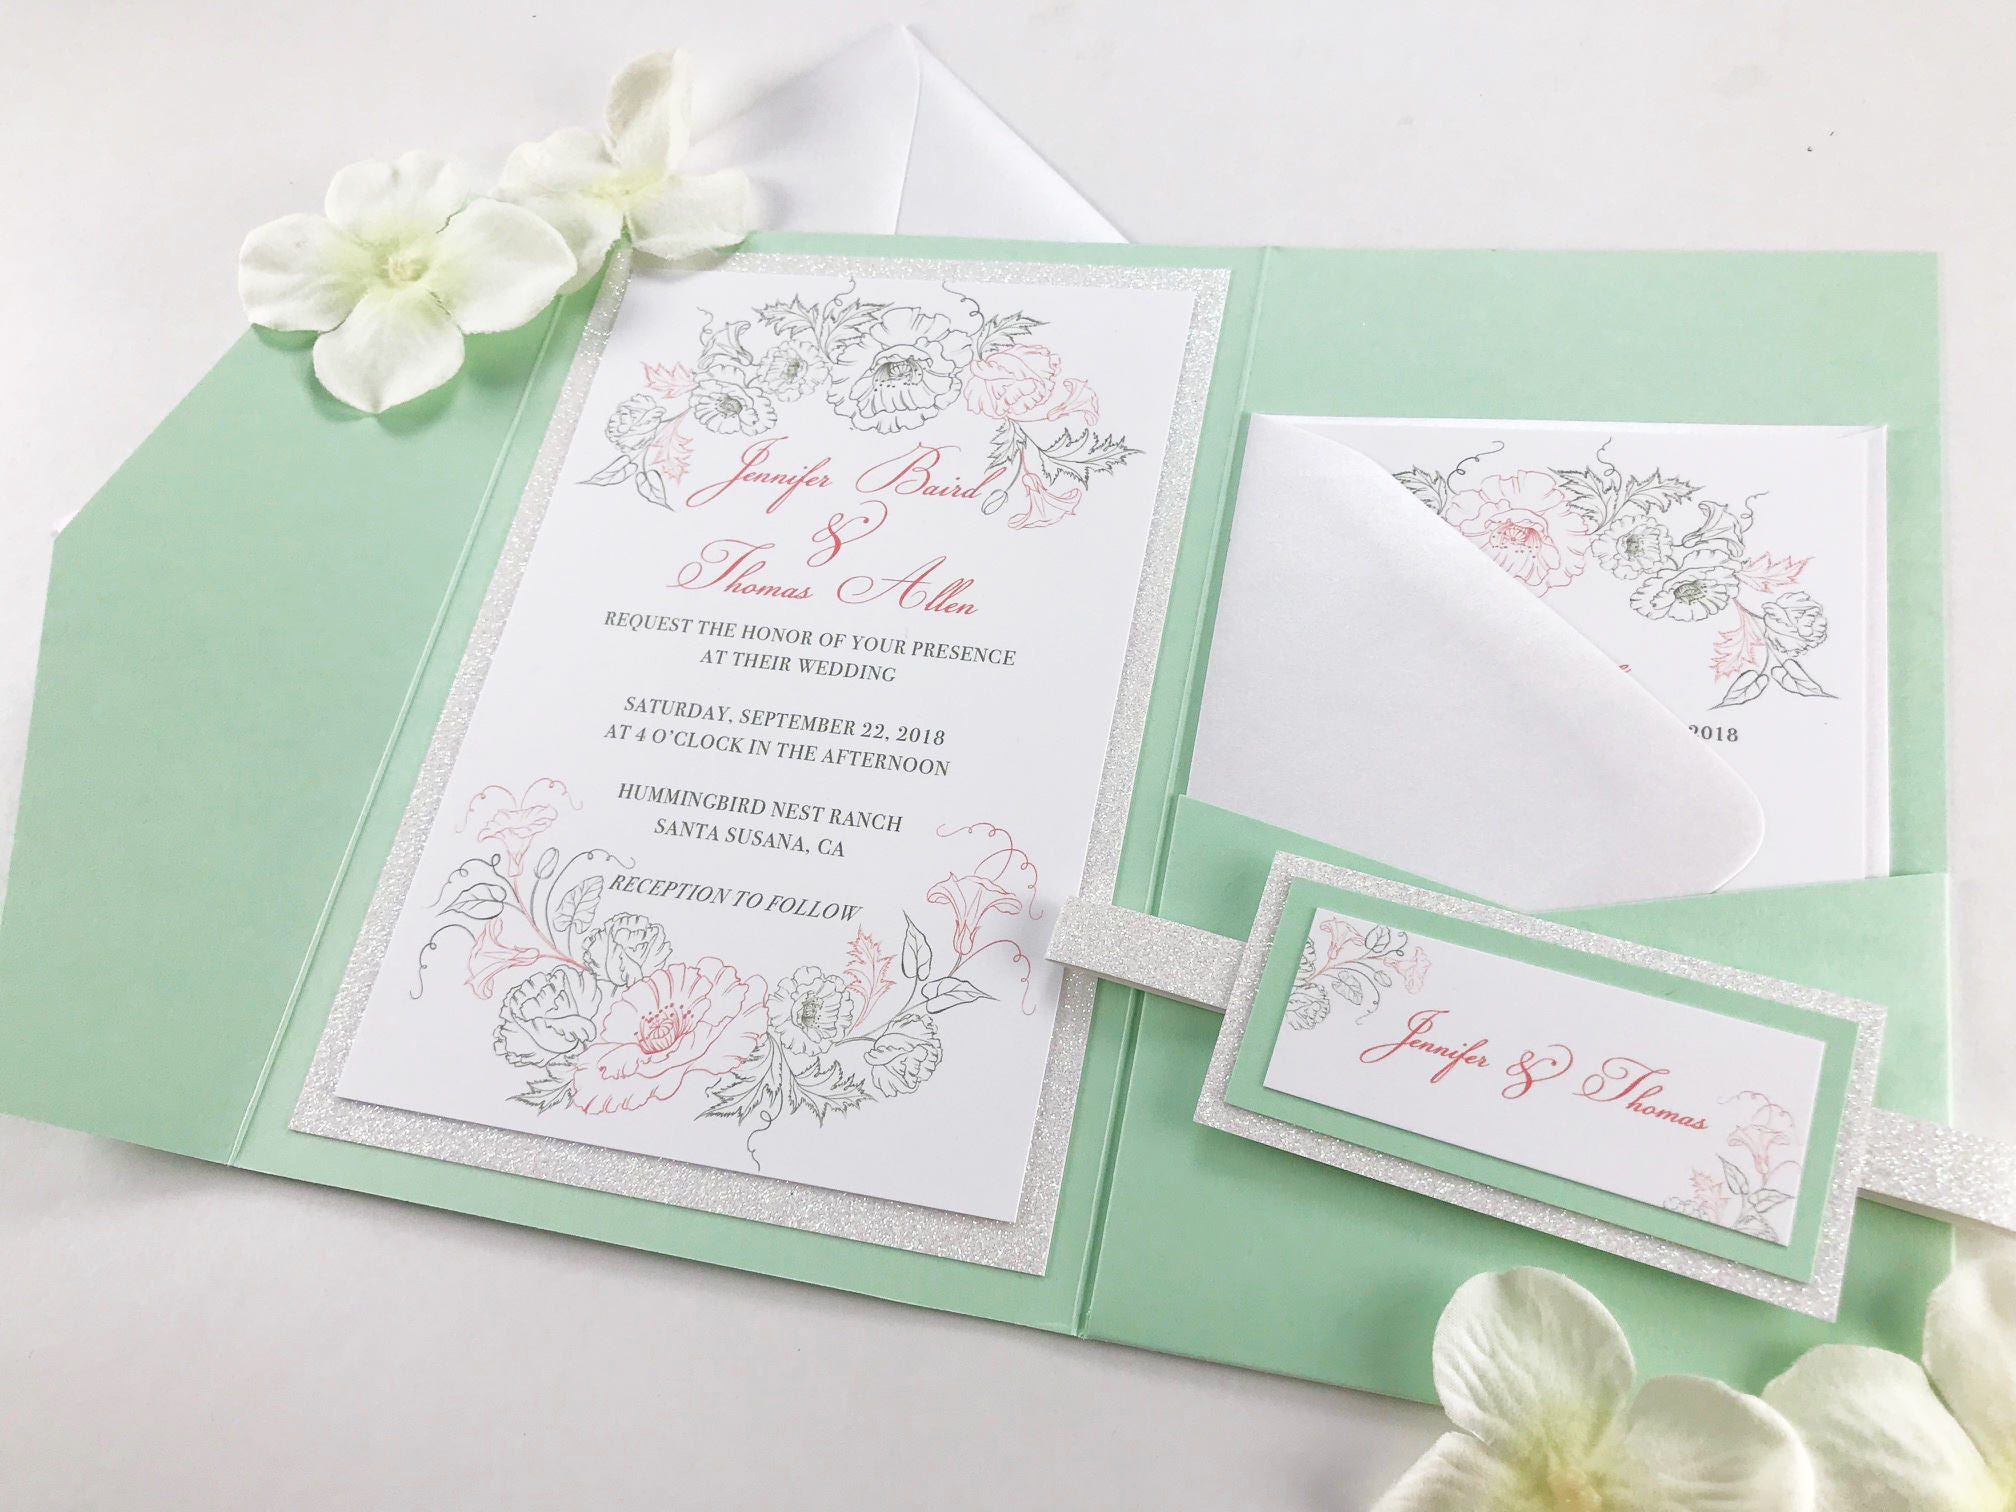 Rustic Wedding Invitations with Floral Outline border Light